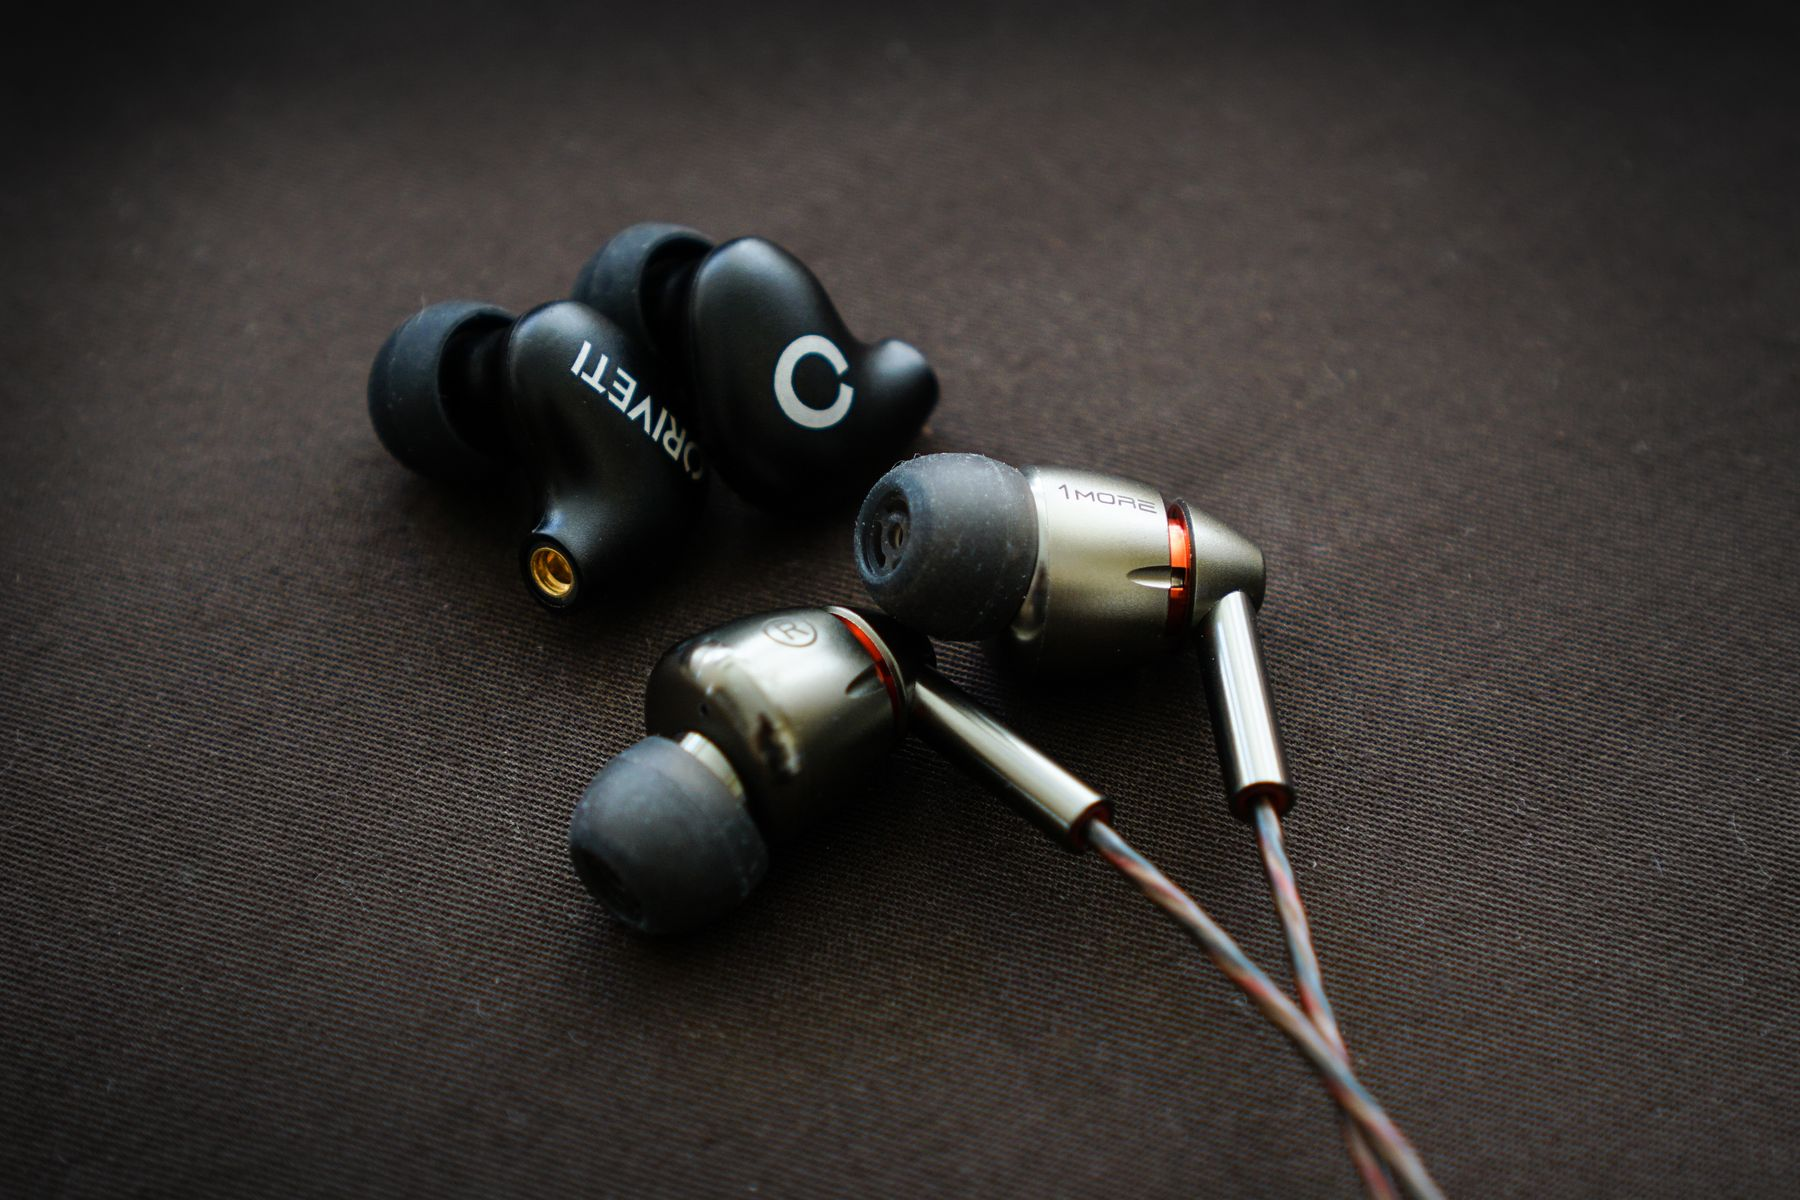 Sony earbuds around the ear - sony earbuds remote